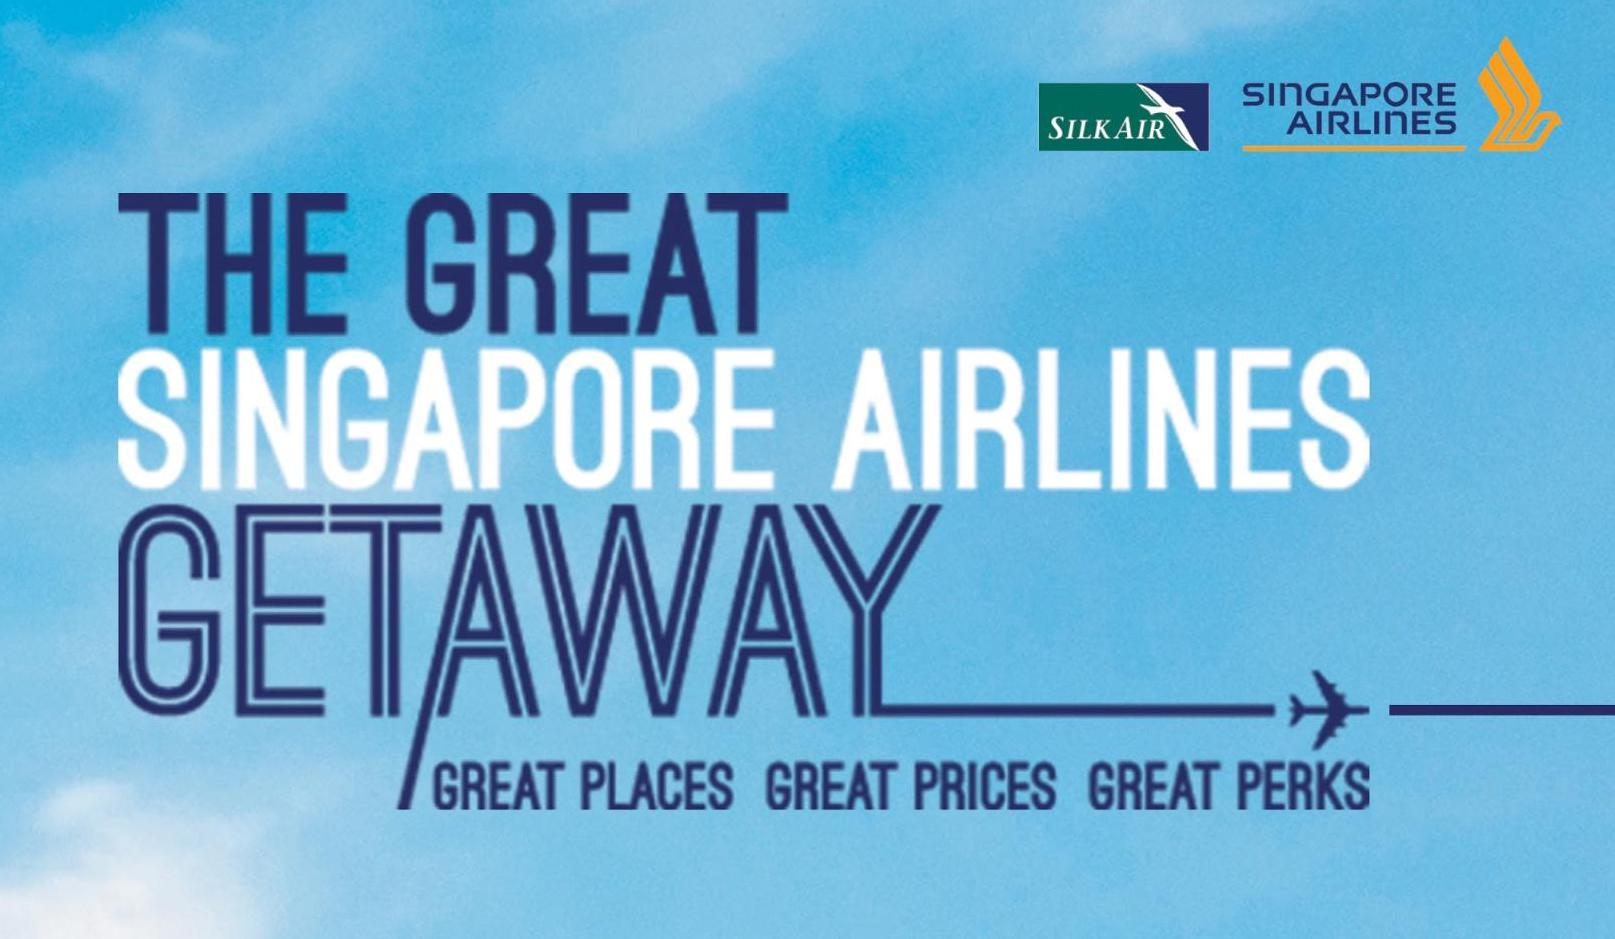 Singapore Airlines Limited Time Promo Fly To 80 Destinations From Ticket  Air Asia Periode 2018 2019 The Great Getaway